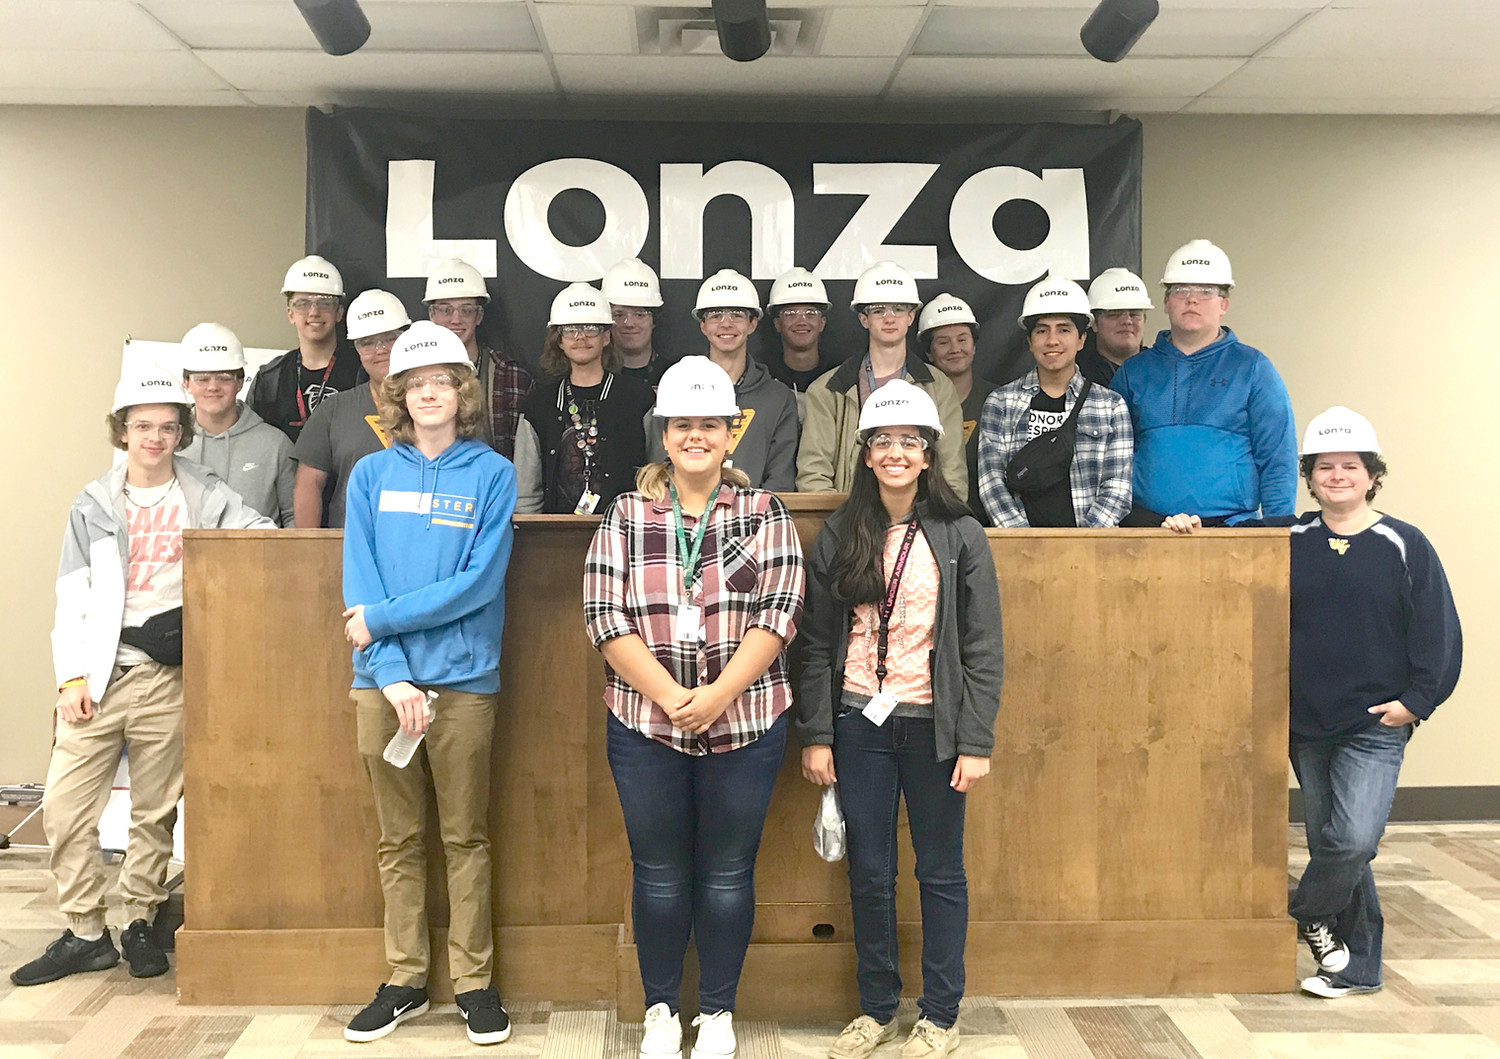 STUDENTS from Jennifer Miles' class at Walker Valley High School had the opportunity to visit Lonza for a tour as part of their Manufacturing Week activities.